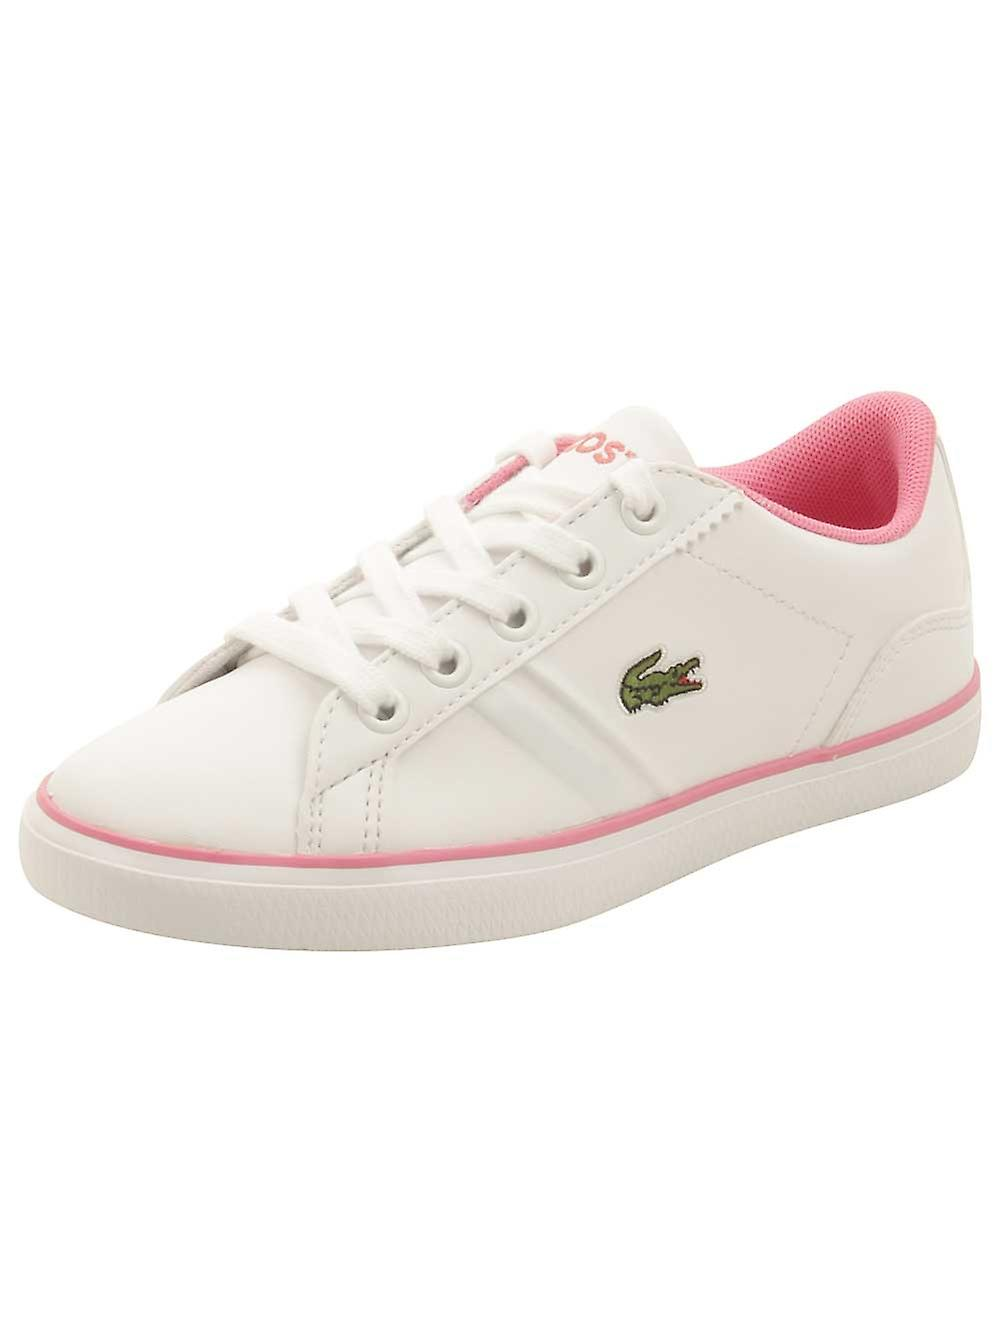 f0fef5bac97cef Lacoste Toddler Lerond 218 2 Sneaker